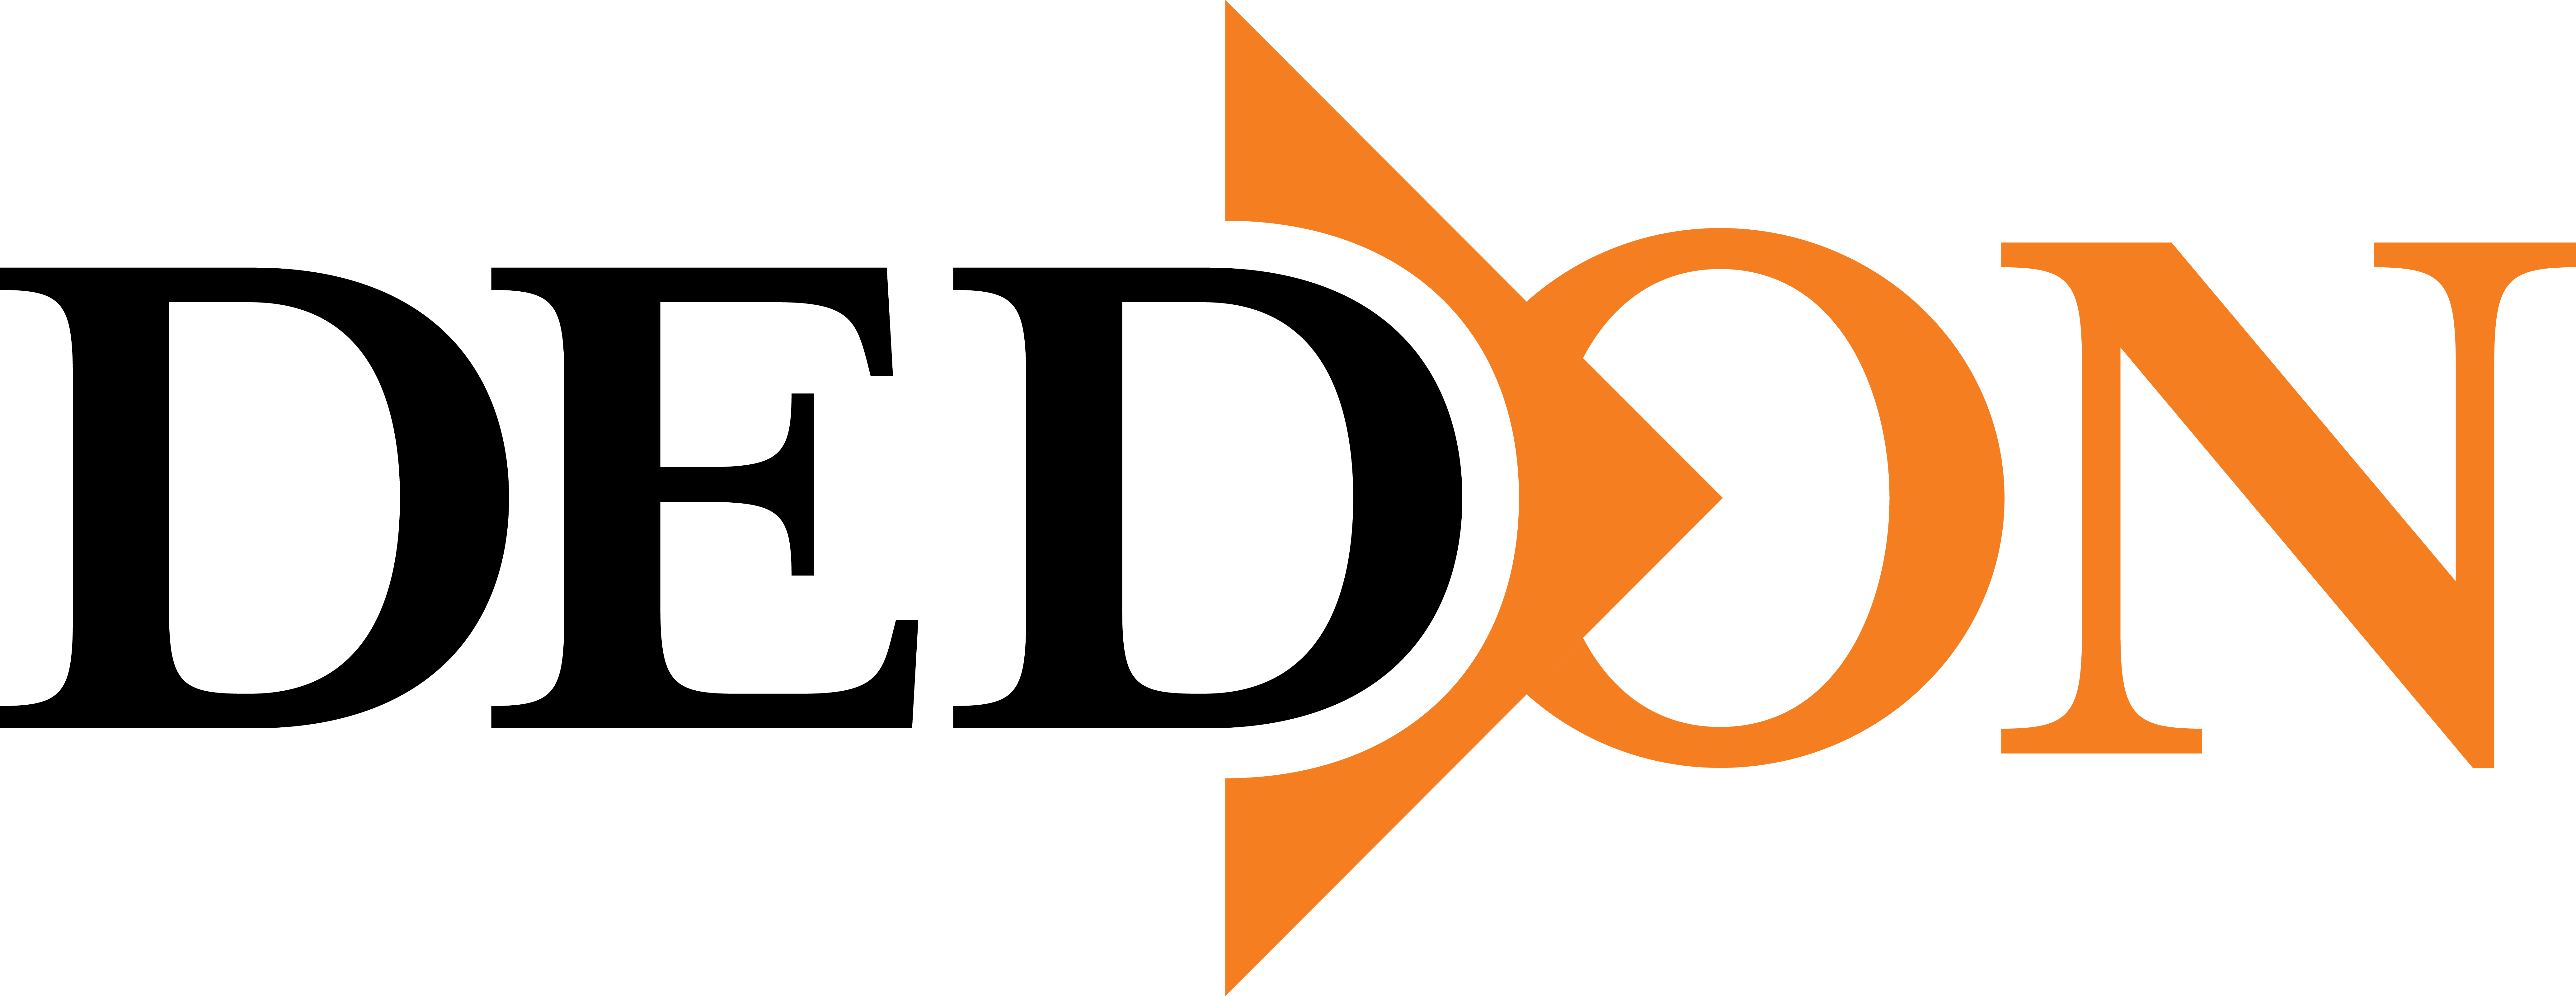 DedON Helps Essential Retailers Evolve in COVID Environment with New Services